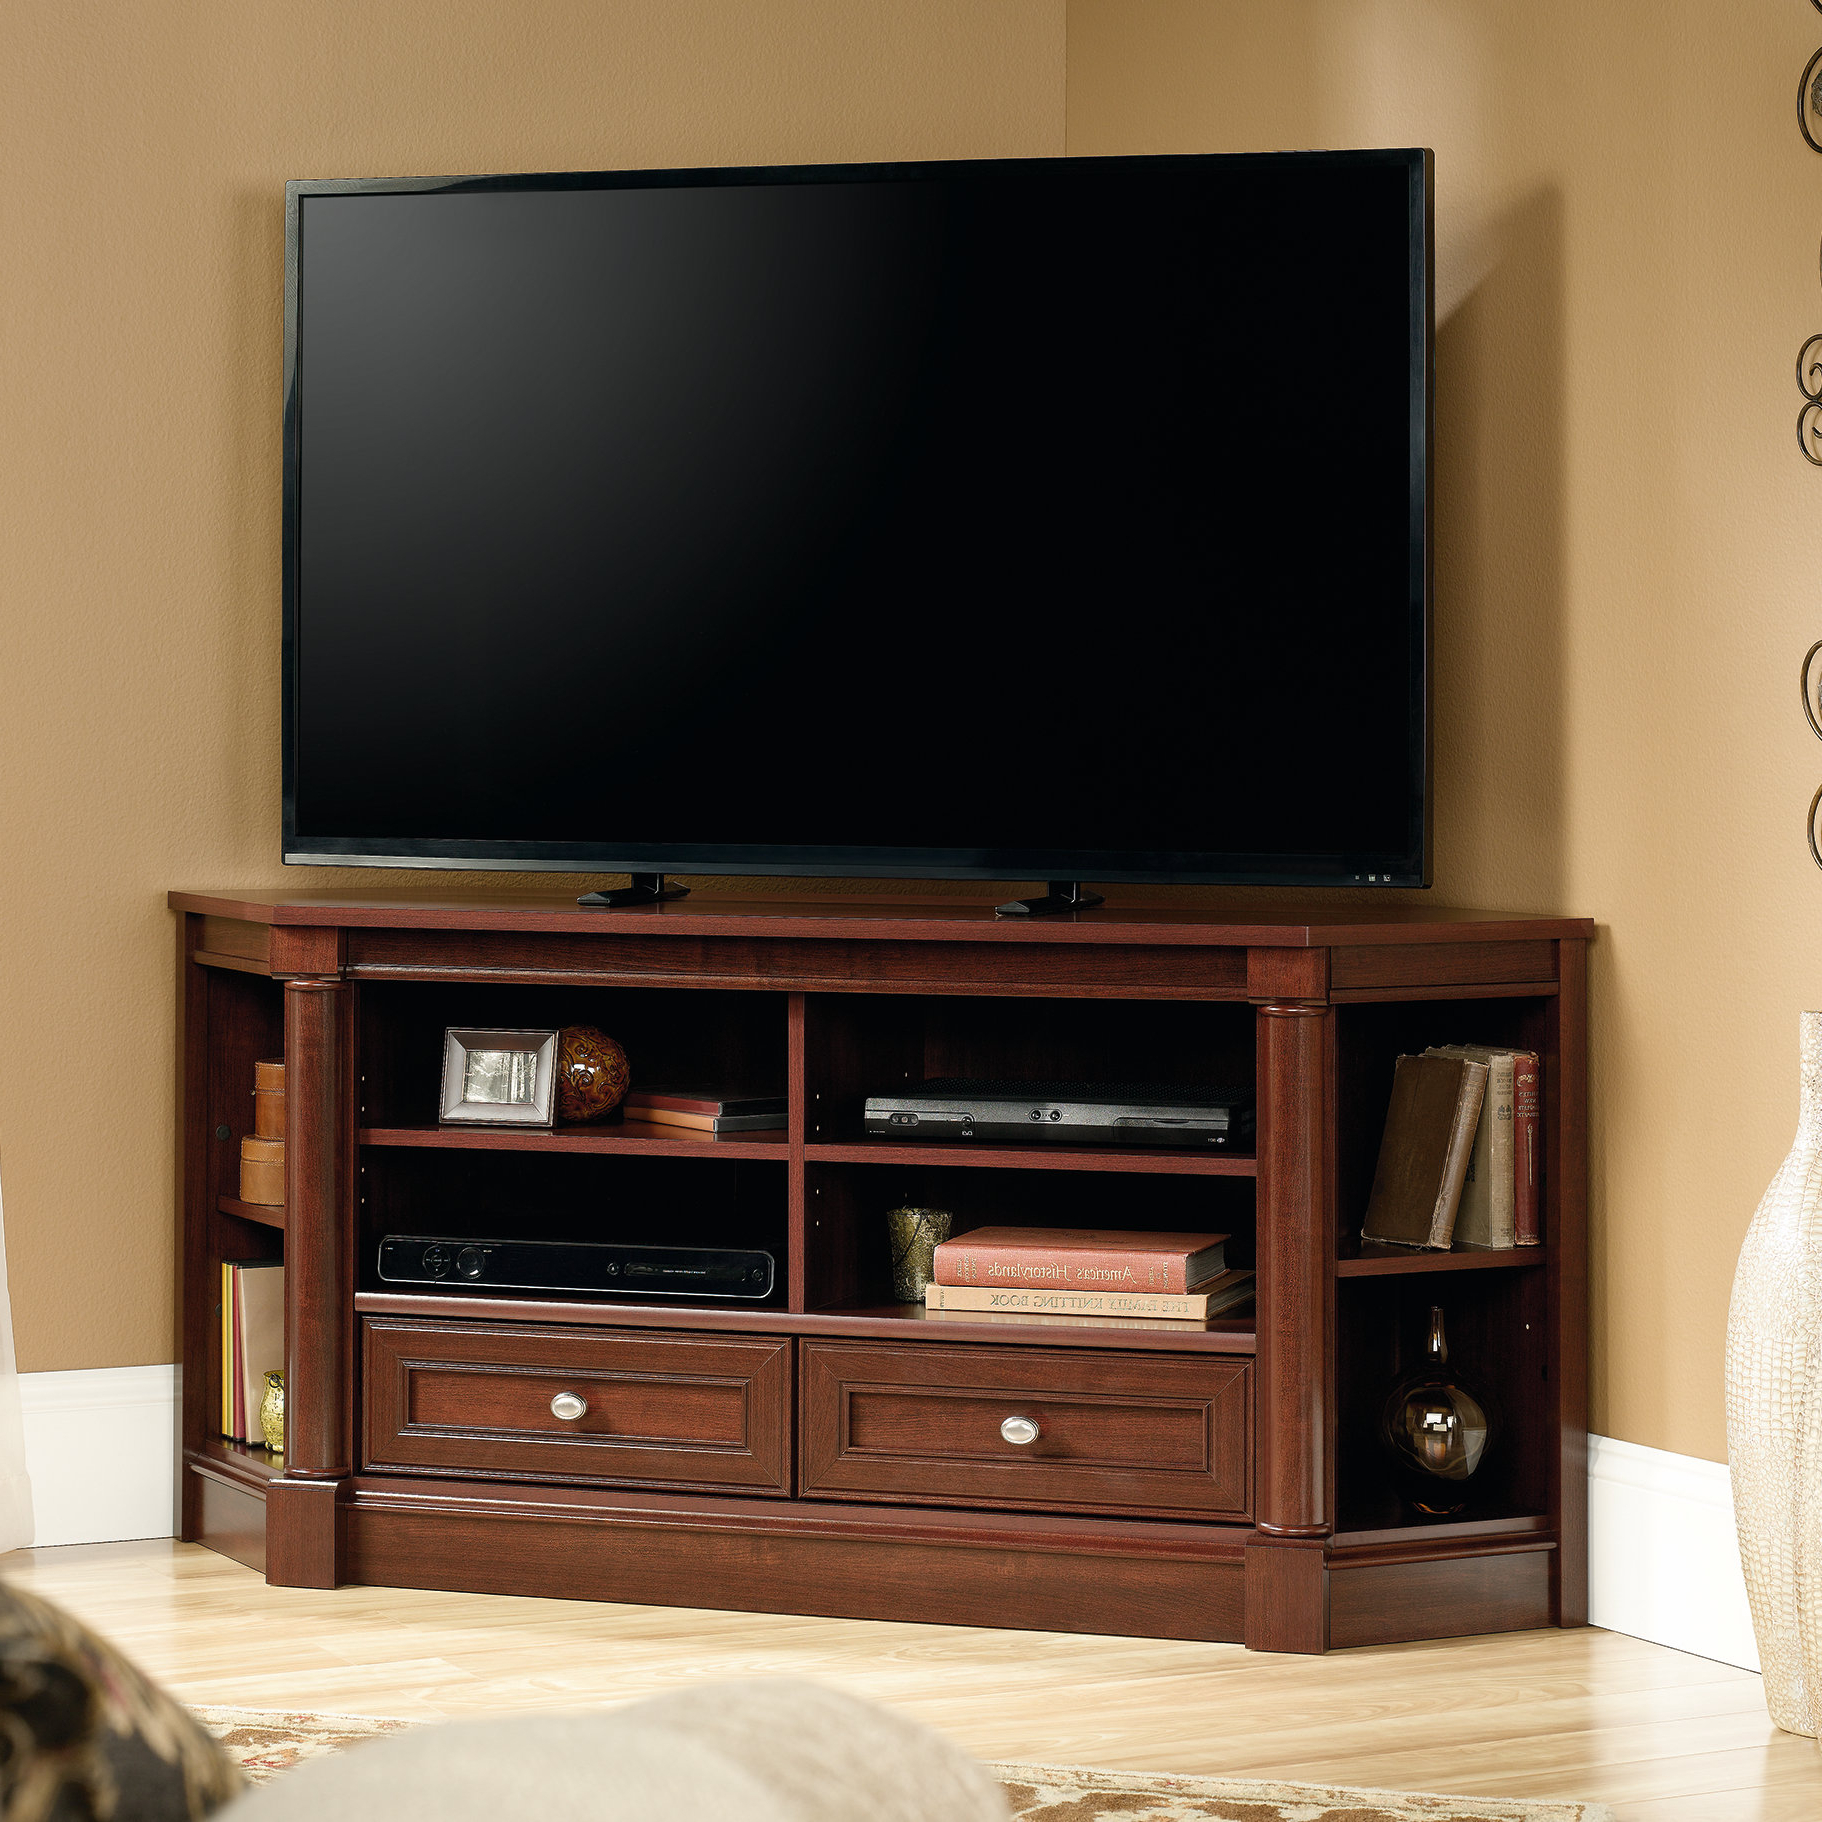 Famous Cheap Corner Tv Stands For Flat Screen With 55 In Corner Tv Stand (View 11 of 20)